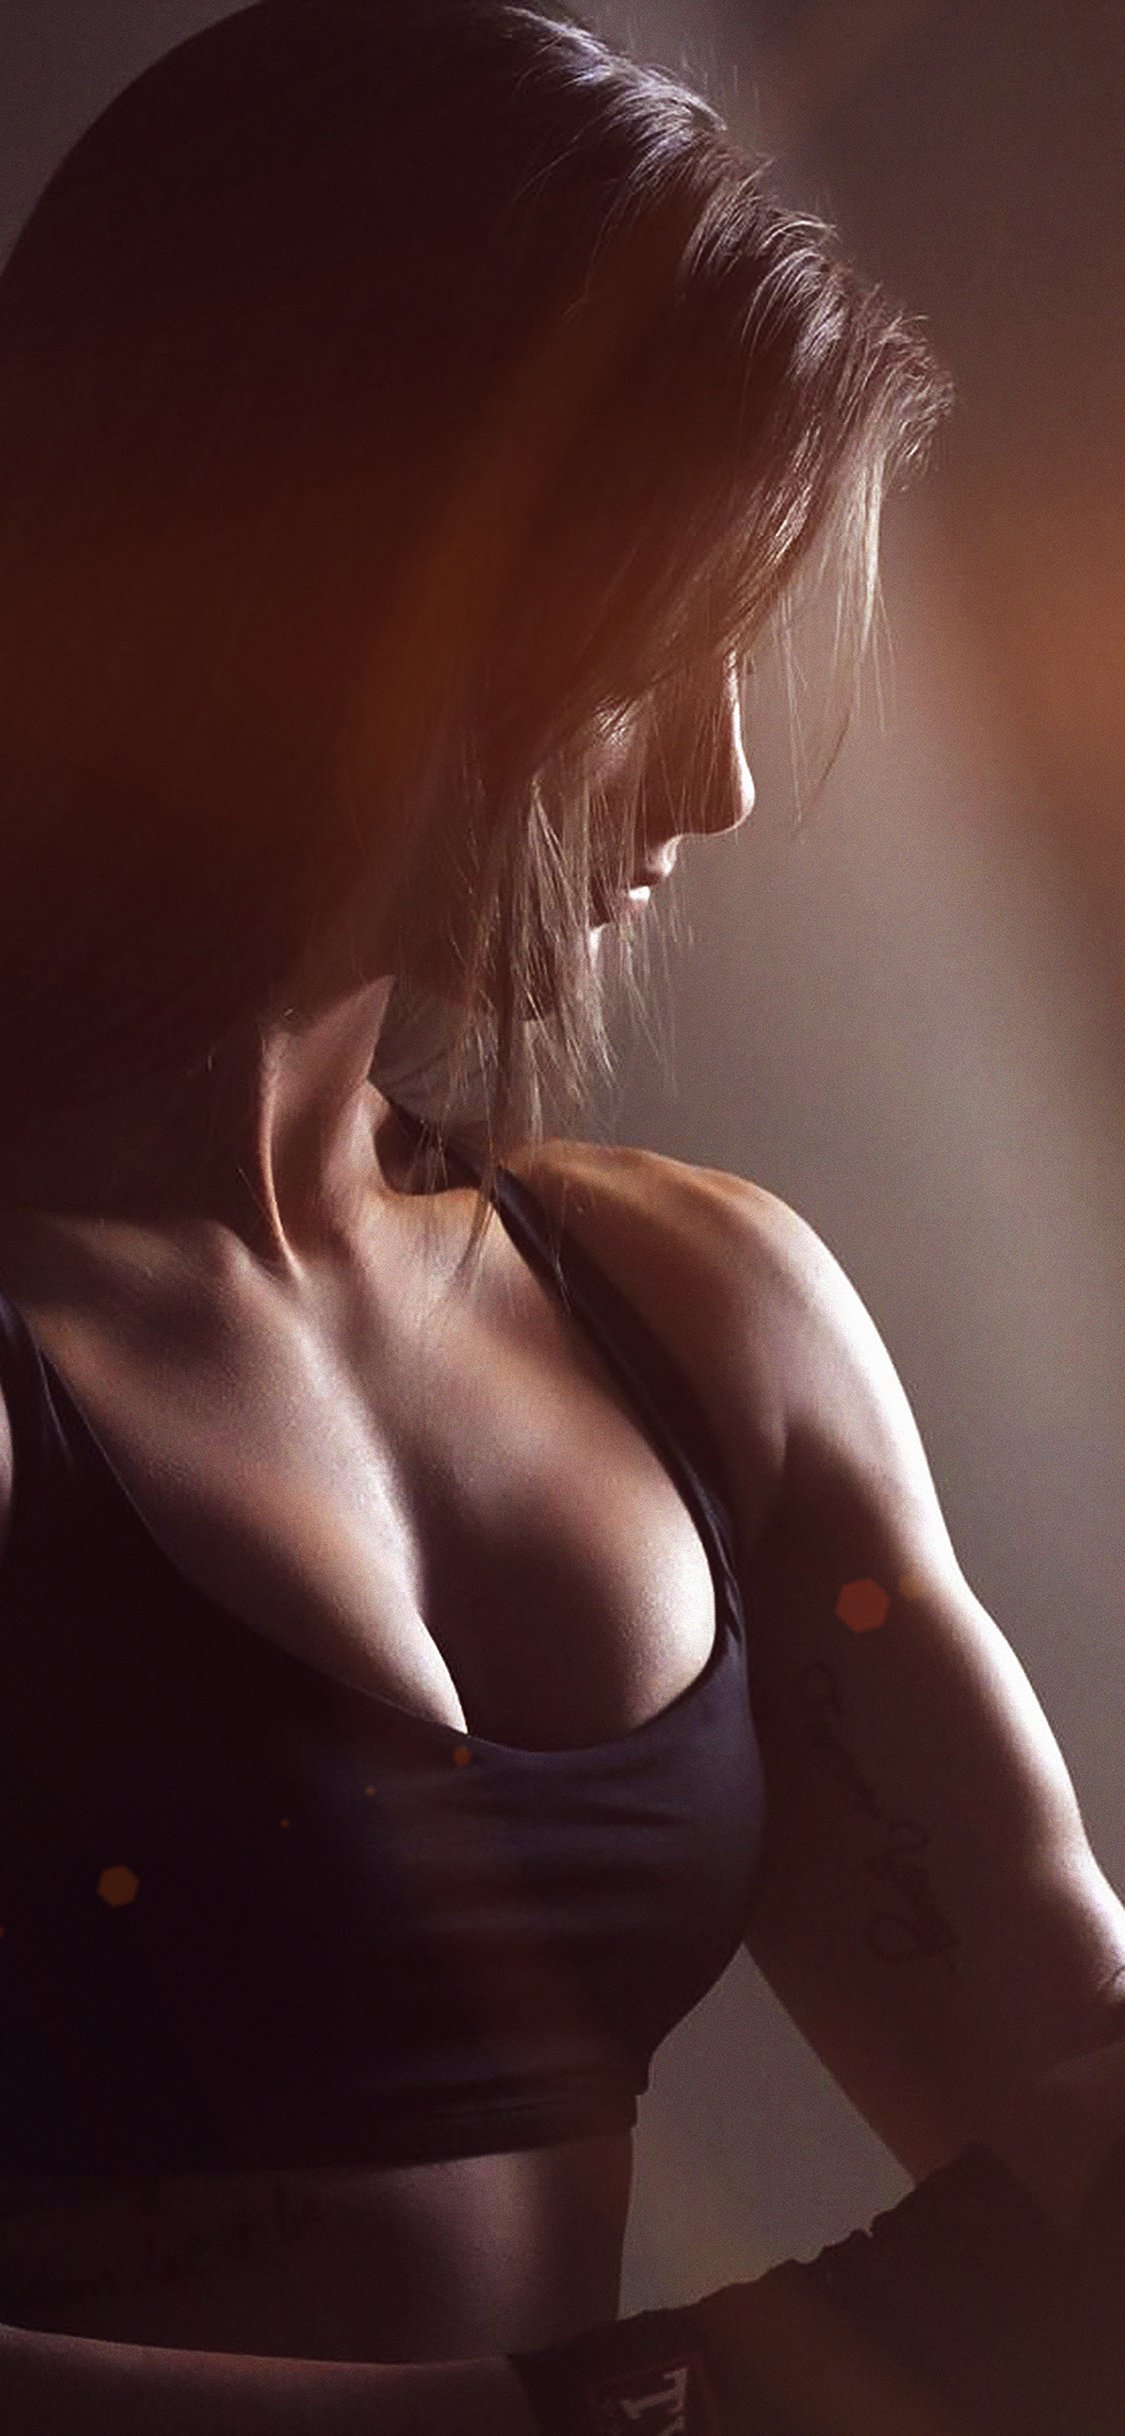 Training girl sexy flare iPhone wallpaper